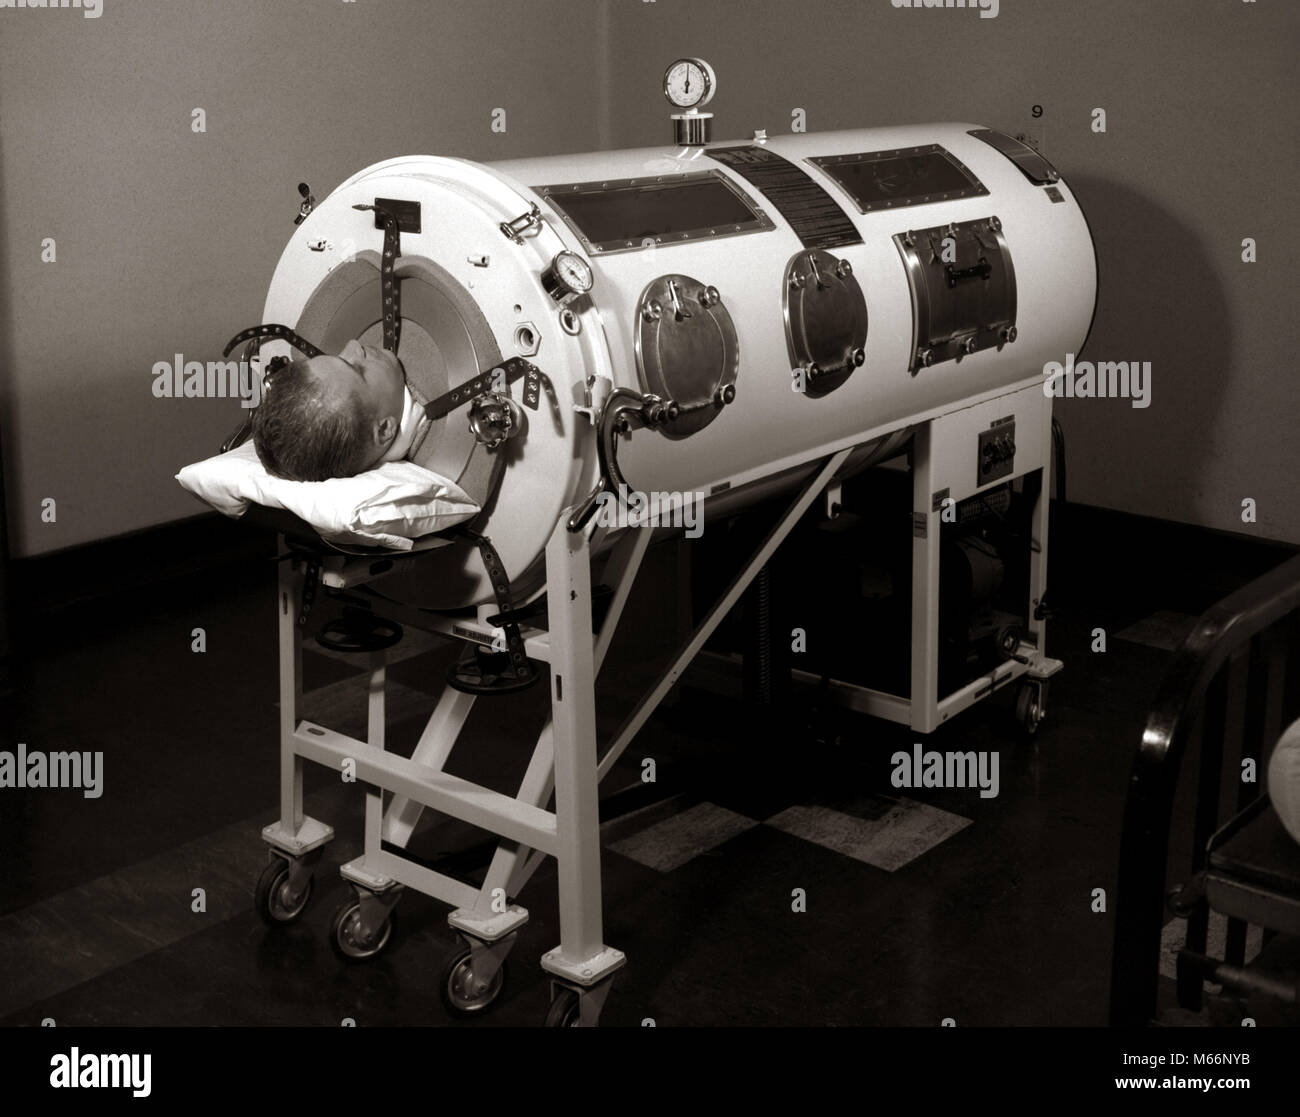 1930s 1940s 1950s MAN LYING IN IRON LUNG NEGATIVE PRESSURE VENTILATOR ARTIFICIAL BREATHING MACHINE - m6512 HAR001 - Stock Image